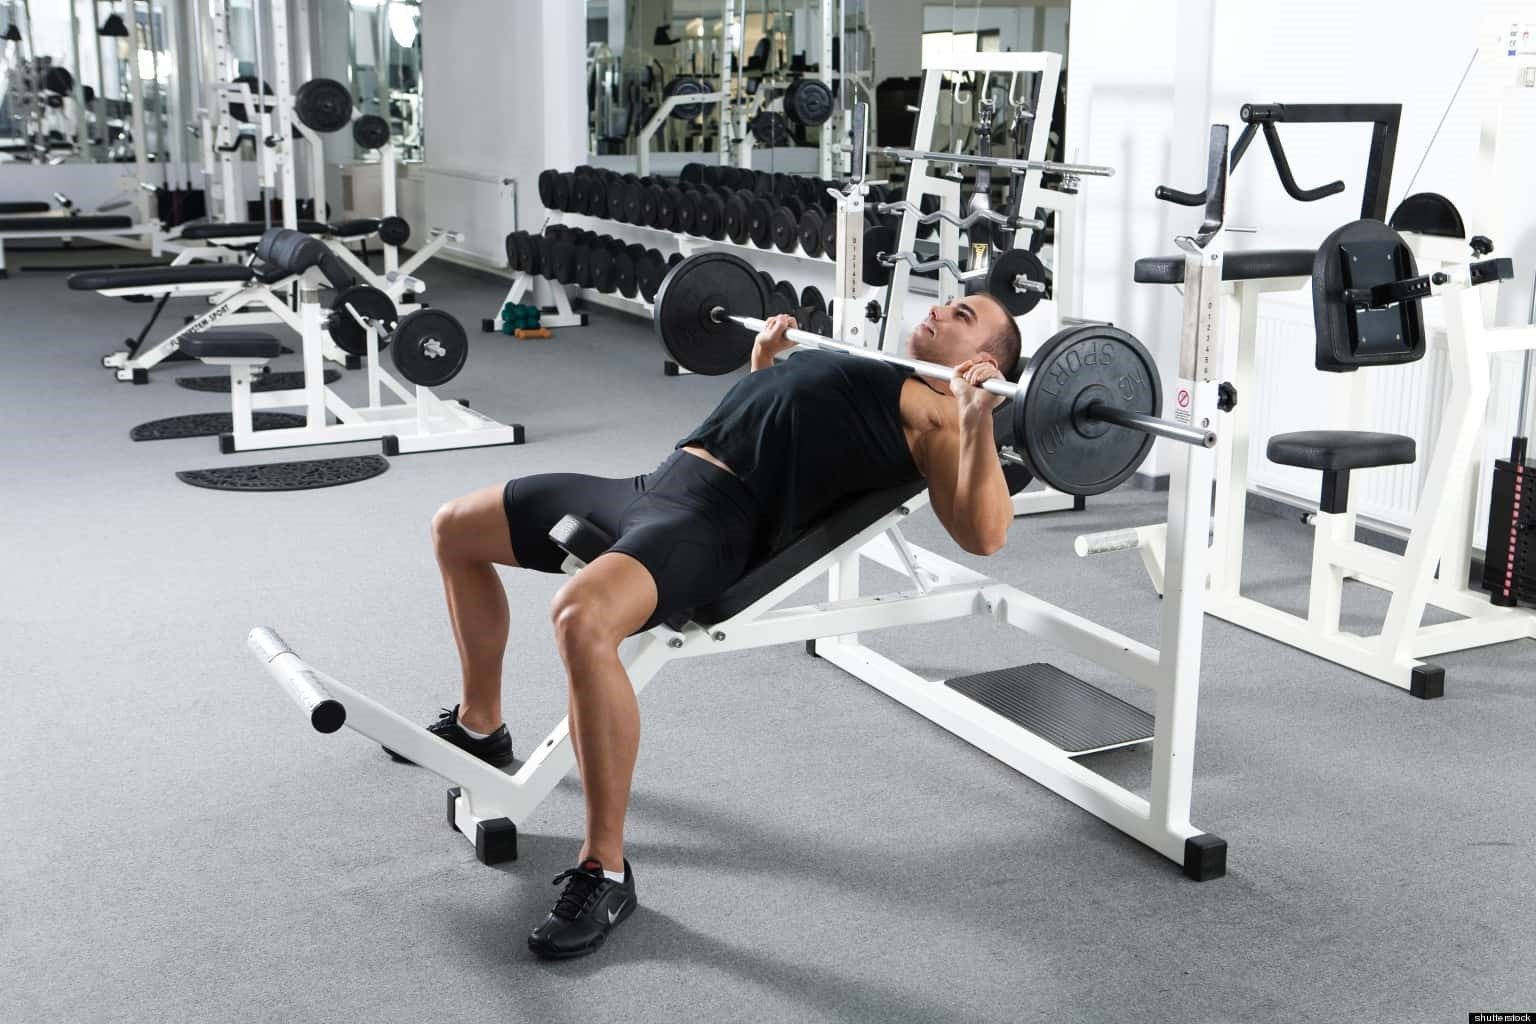 The Main Benefits of Deca Durabolin (Nandrolone) For Sale